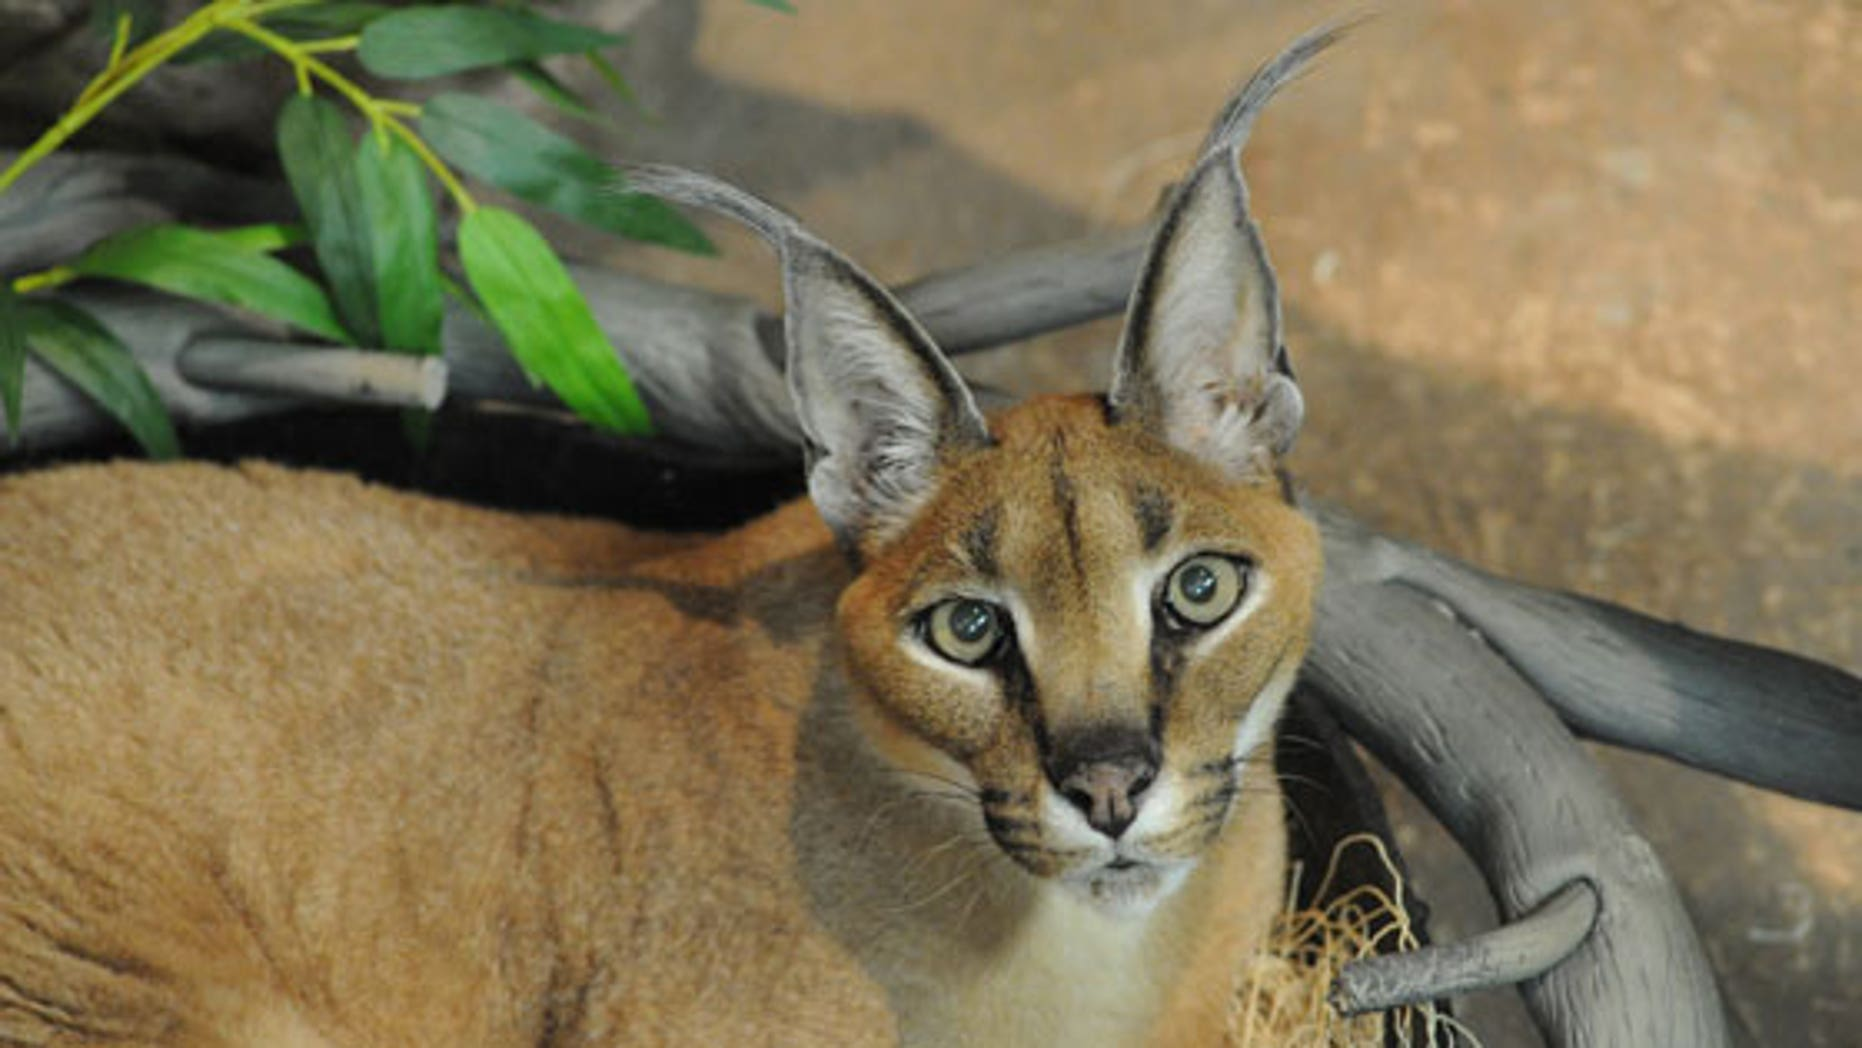 Westlake Legal Group Caracal_560x373.jpg Large exotic cat mauls mom, child in Illinois, report fox-news/us/us-regions/midwest/illinois fox-news/lifestyle/pets fox news fnc/us fnc b005d112-33e5-554d-96df-c48168e07b8e article